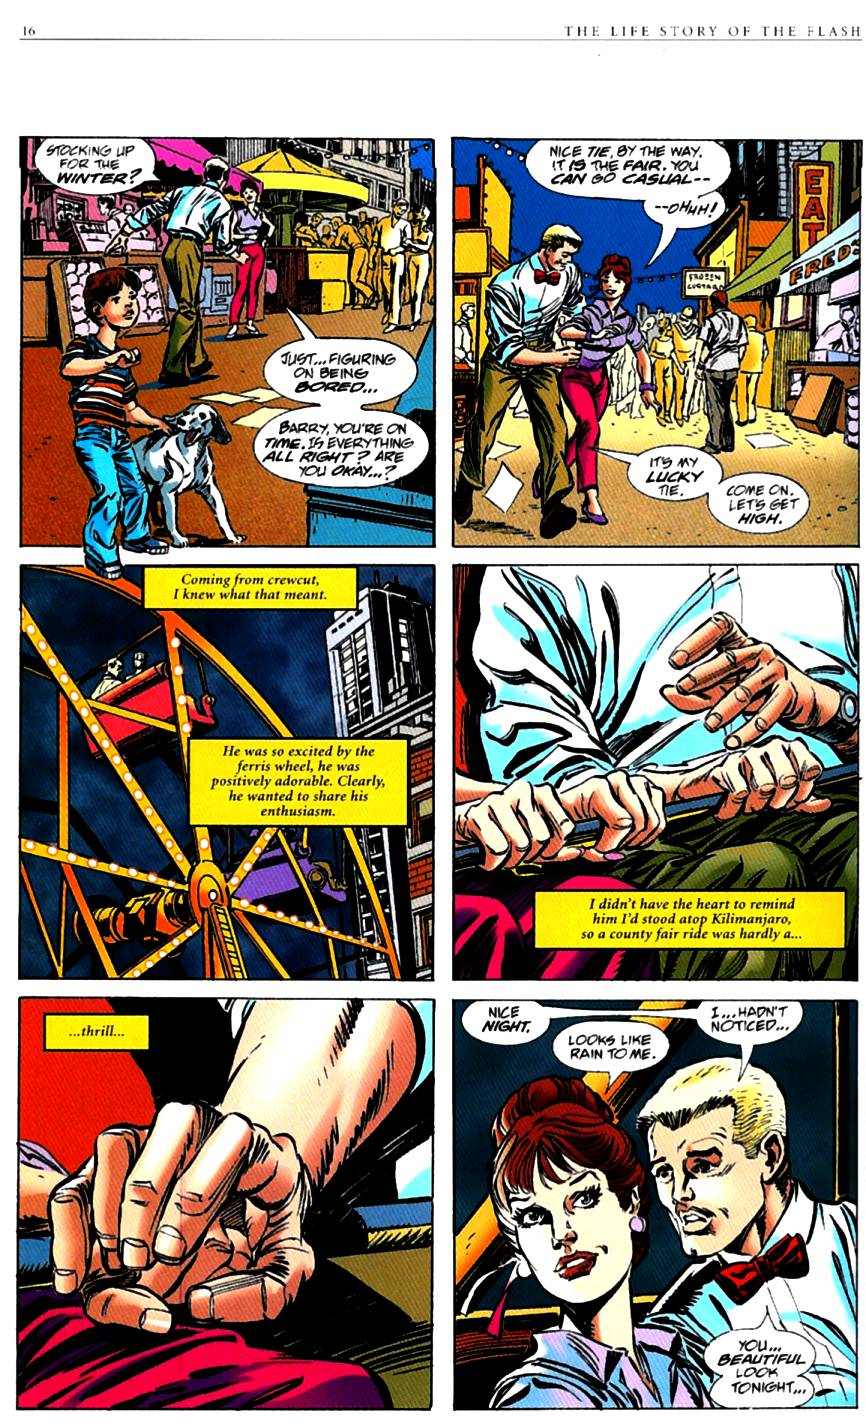 Read online The Life Story of the Flash comic -  Issue # Full - 18